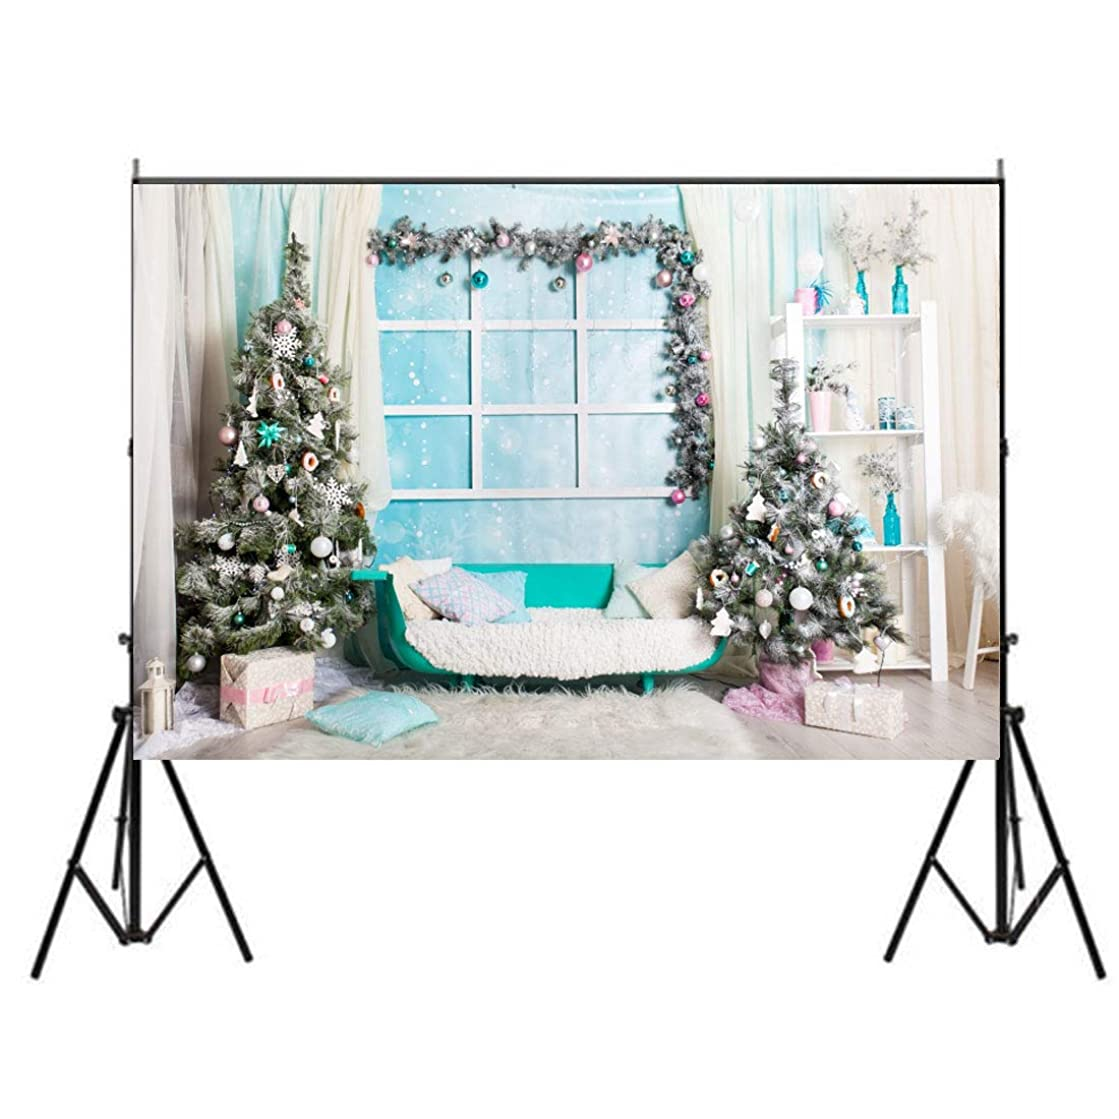 7x5ft Christmas Balls Tree Backdrop Xmas Gift Chic Sofa Chair Pillow Window Curtain Carpet Photography Background Kid Baby Girl Artistic Portrait New Year Indoor Decor Photo Shoot Studio Props